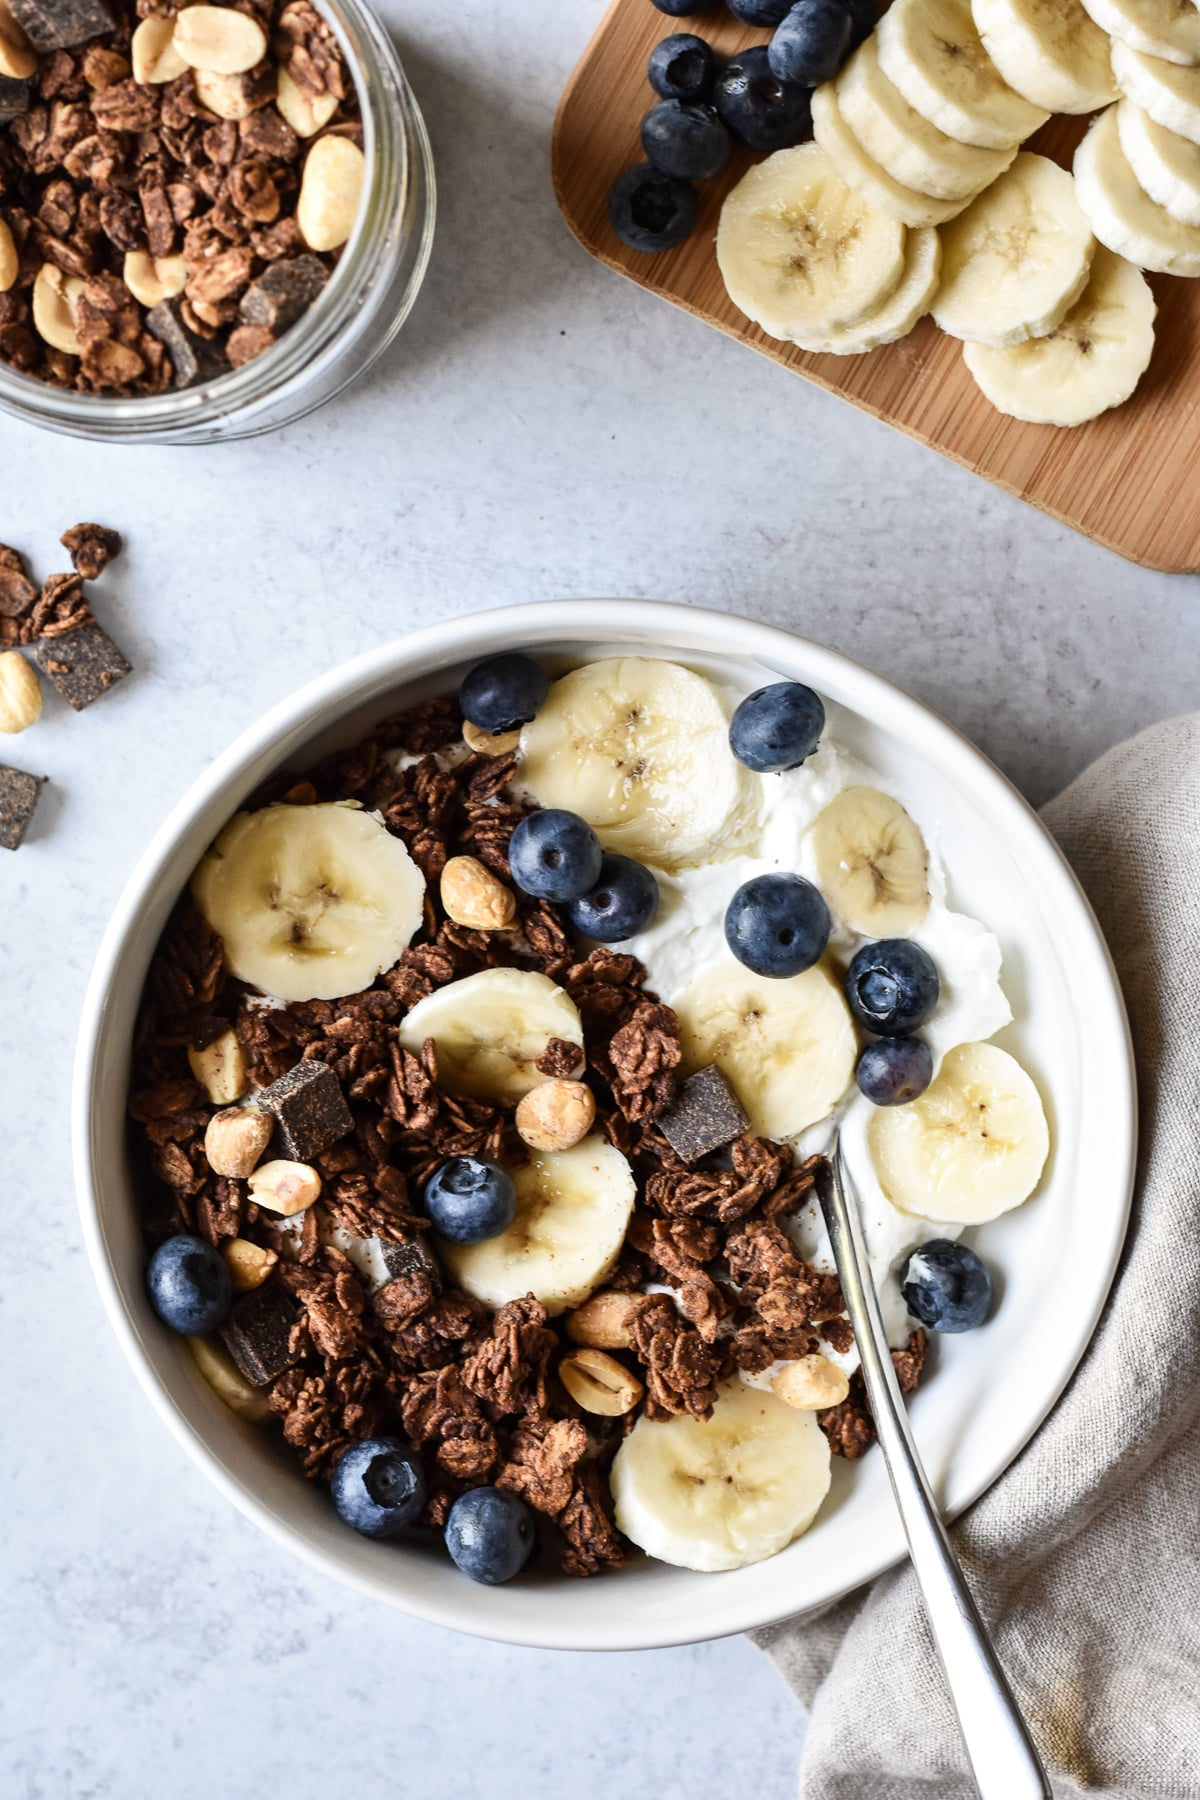 bowl of yogurt with chocolate peanut butter granola and bananas and blueberries.